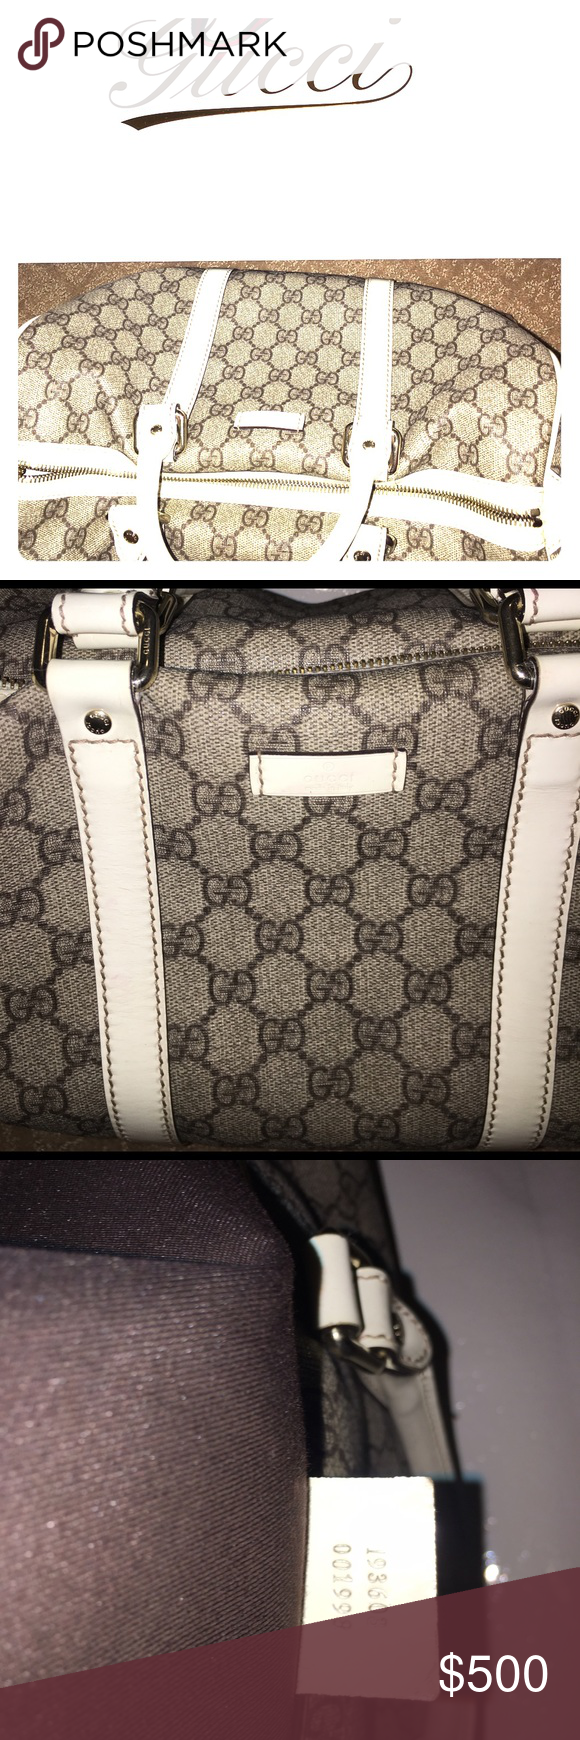 """Authentic Vintage Boston Handbag. Still has tag on it from store. I bought it for """"her"""" as Christmas gift. The grinch showed up, no longer together. I paid 545 plus tax. Willing to negotiate a price close to that. Thanks for looking! Gucci Bags Shoulder Bags"""